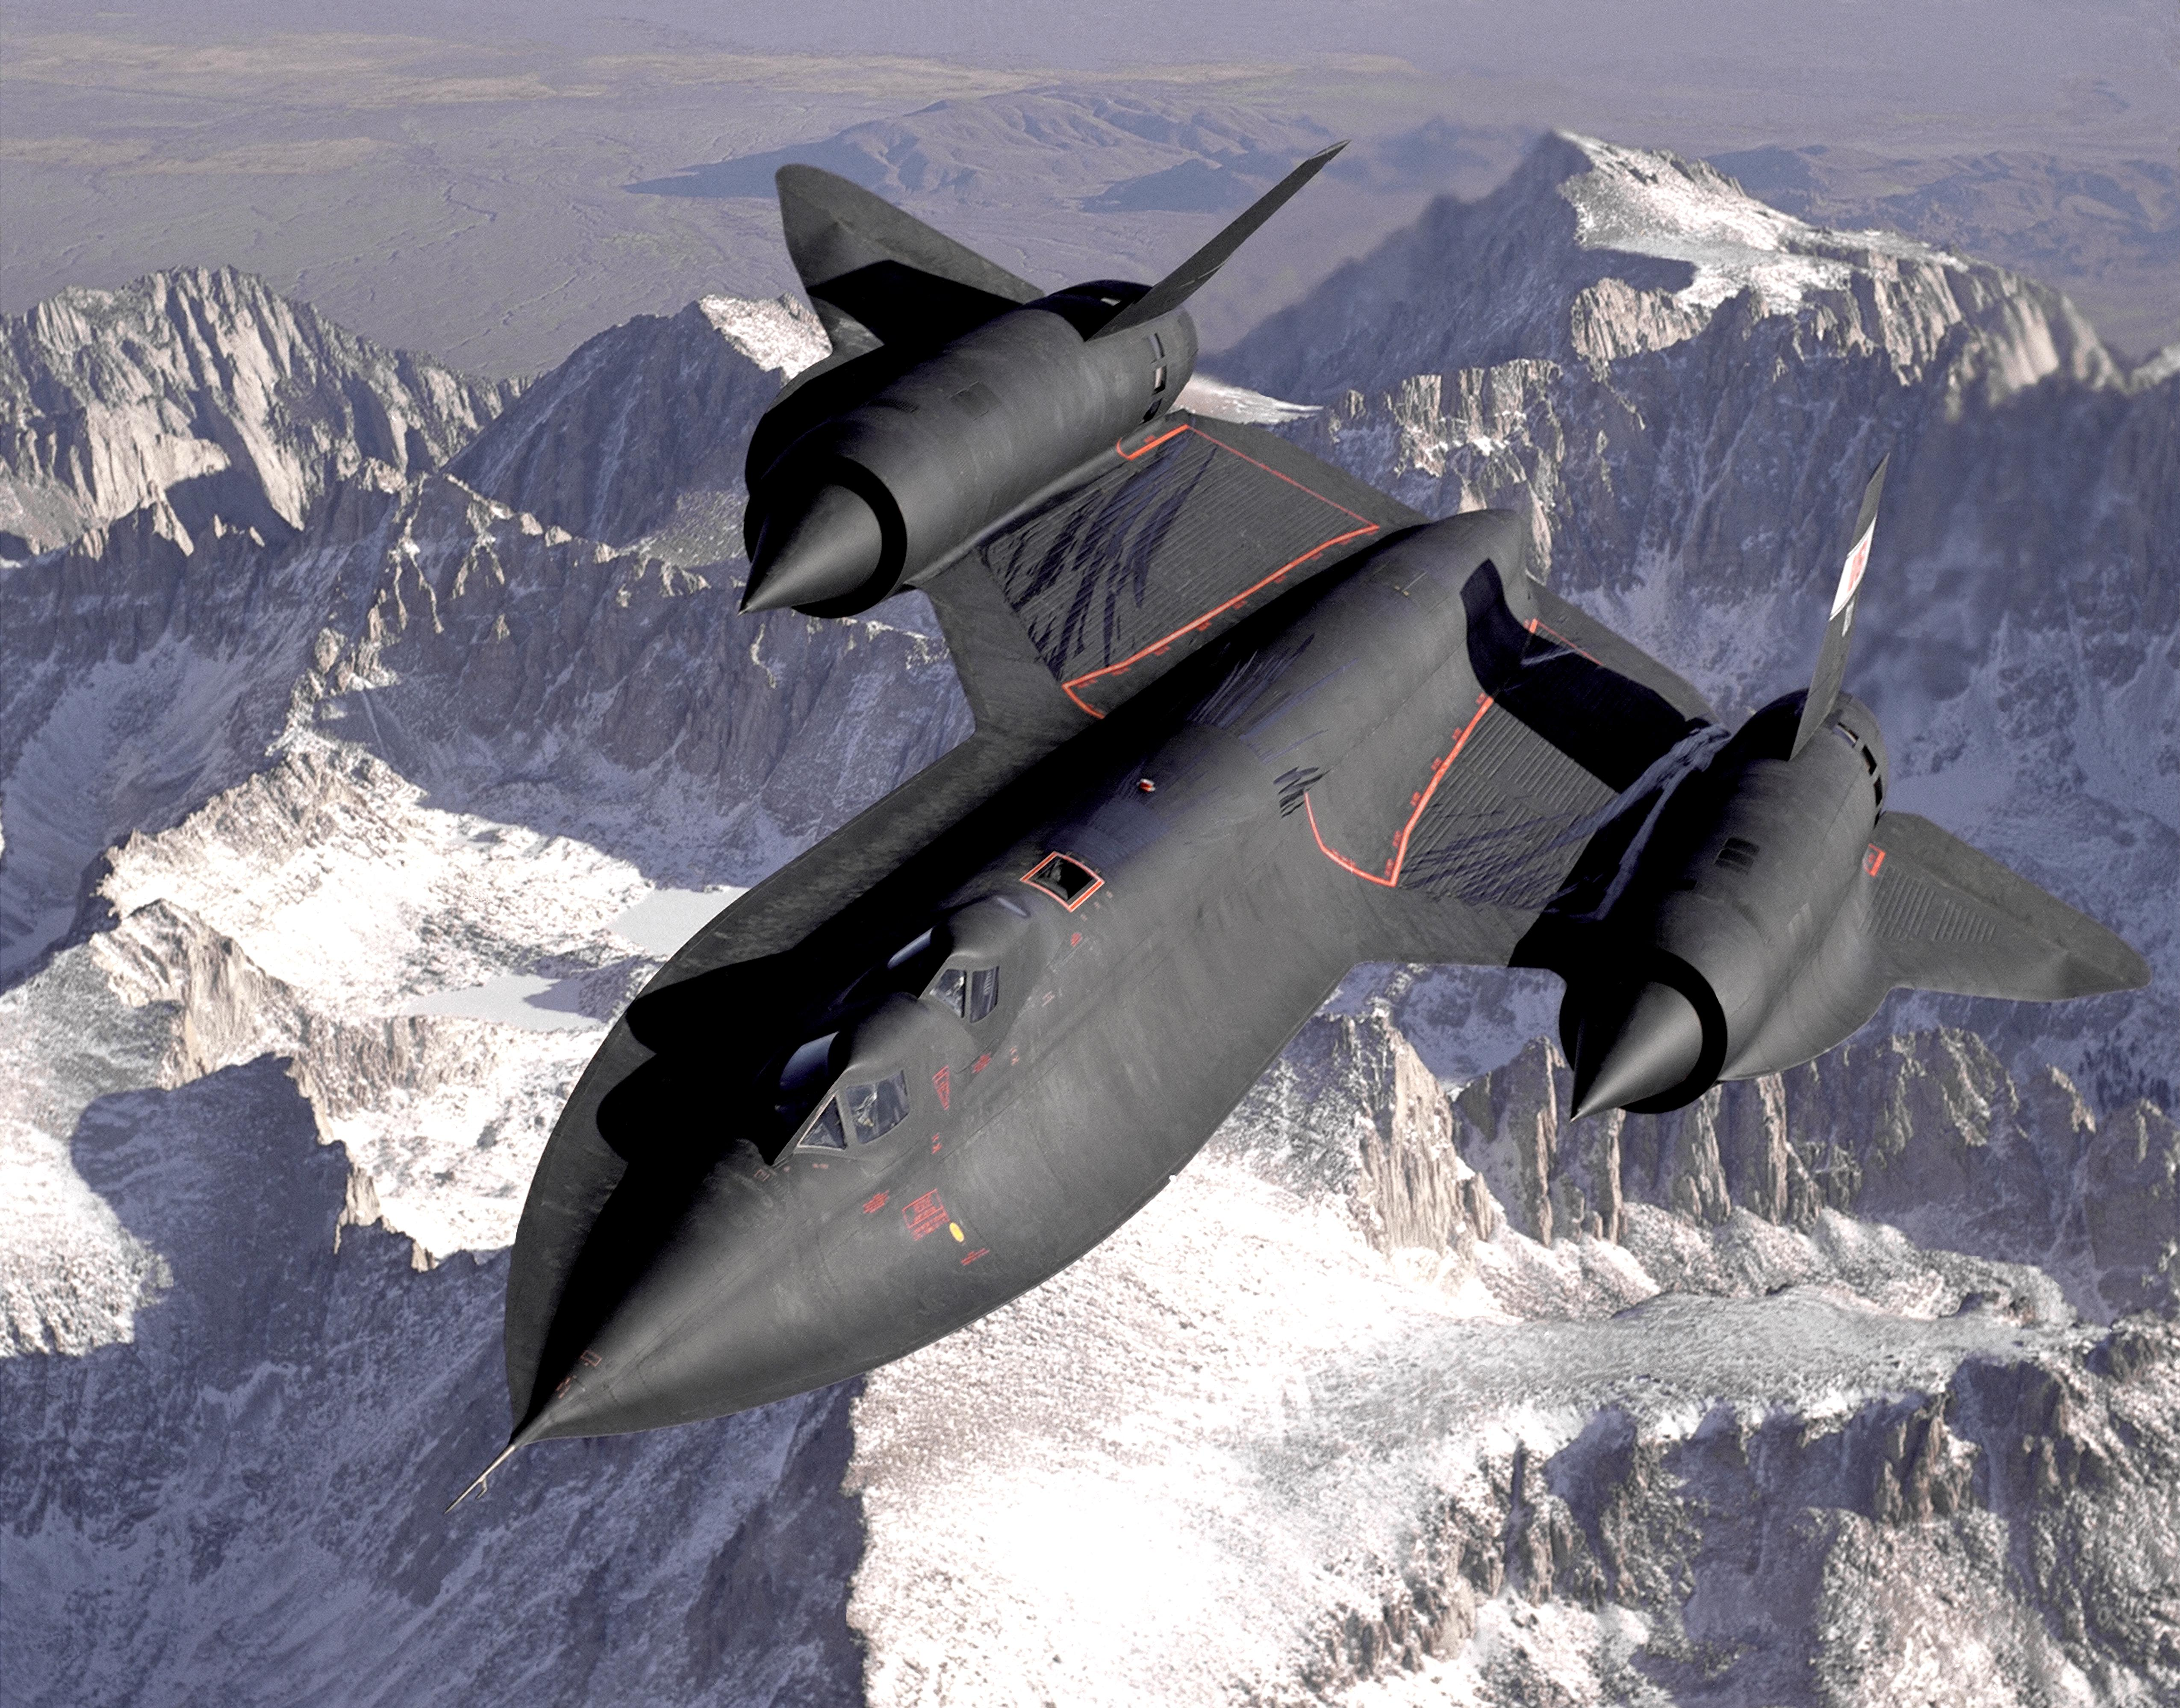 http://upload.wikimedia.org/wikipedia/commons/9/97/Lockheed_SR-71_Blackbird.jpg